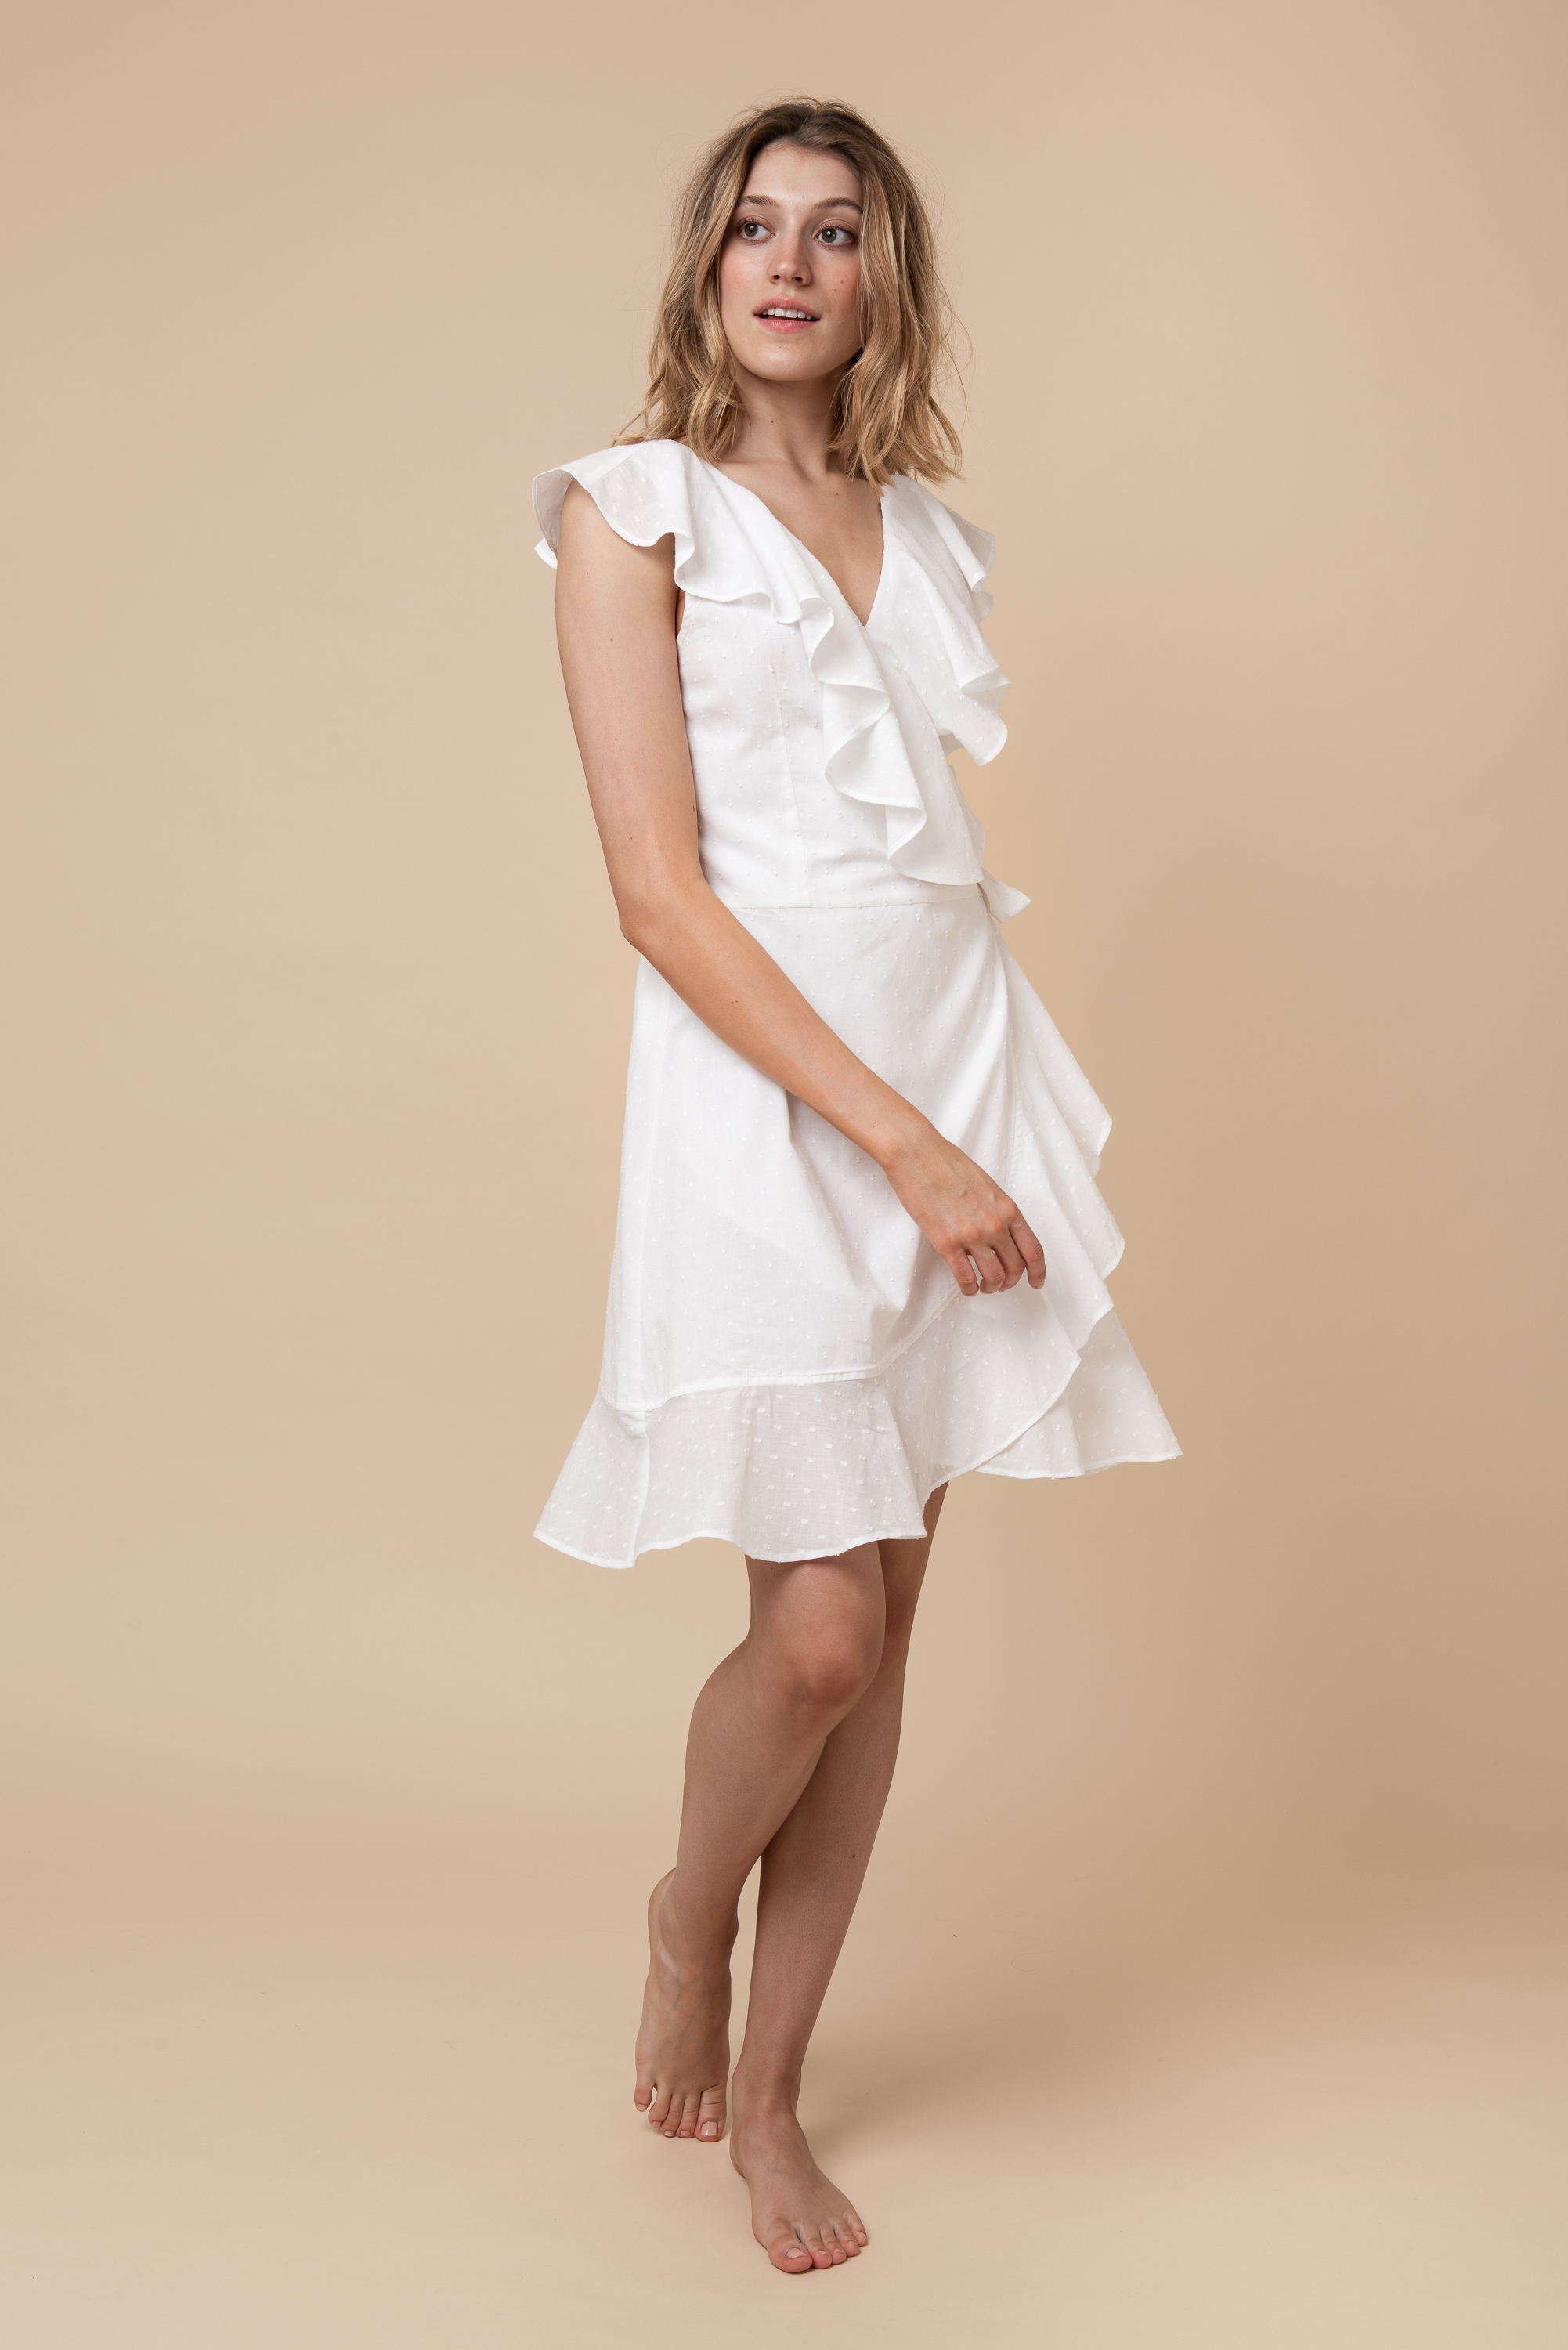 THE CLAIRA A versatile one size fits all wrap dress with an adjustable waist band for maximum flexibility.